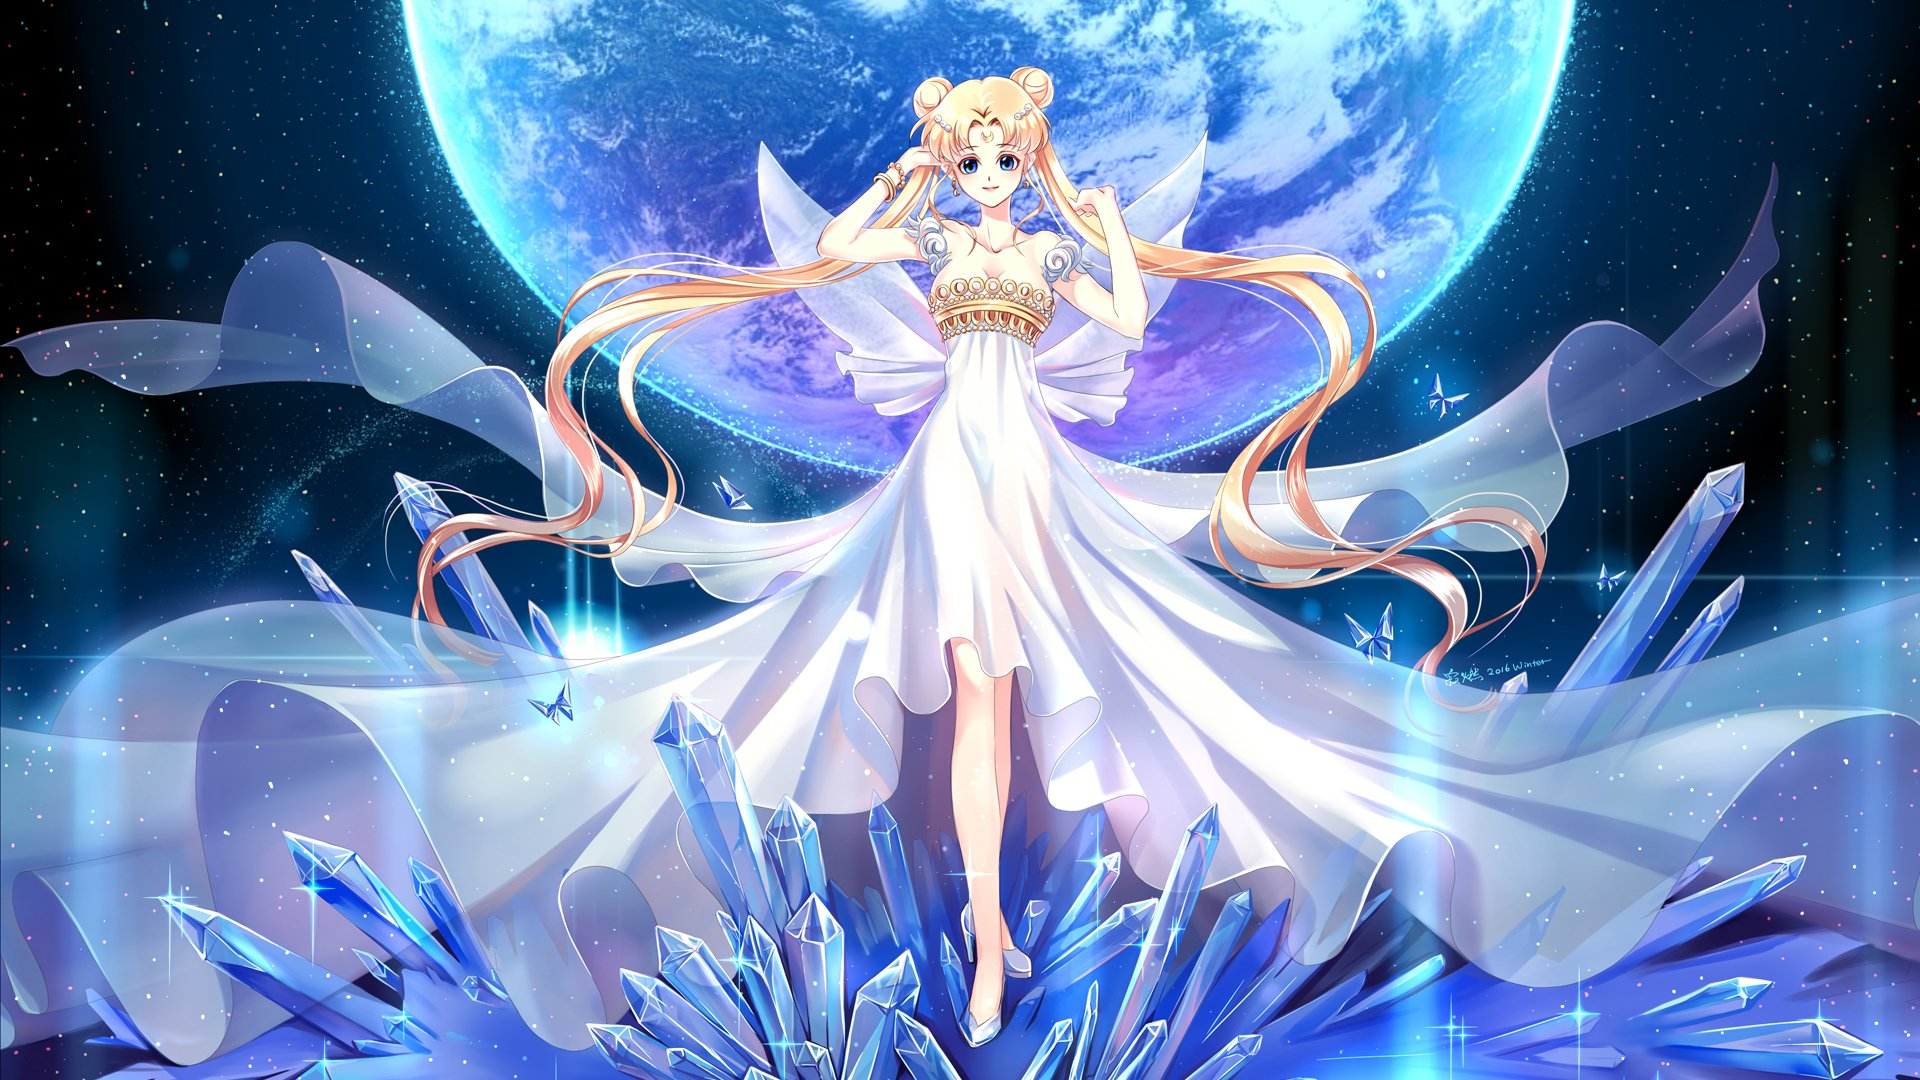 Sailor Moon Crystal images Sailor Moon HD wallpaper and background photos